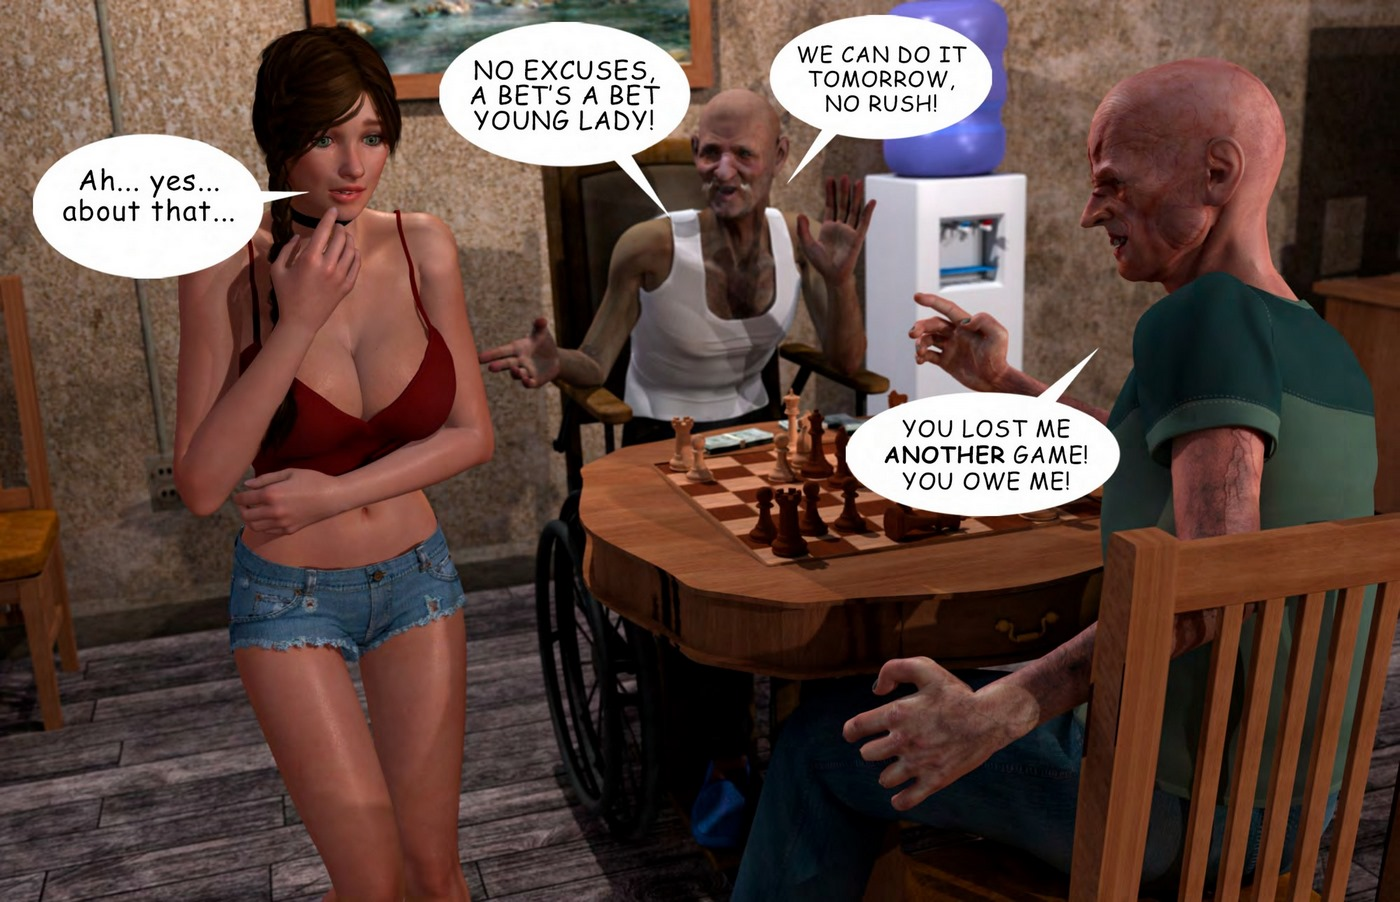 Lost Bet - Petra Helps The Elderly - part 3